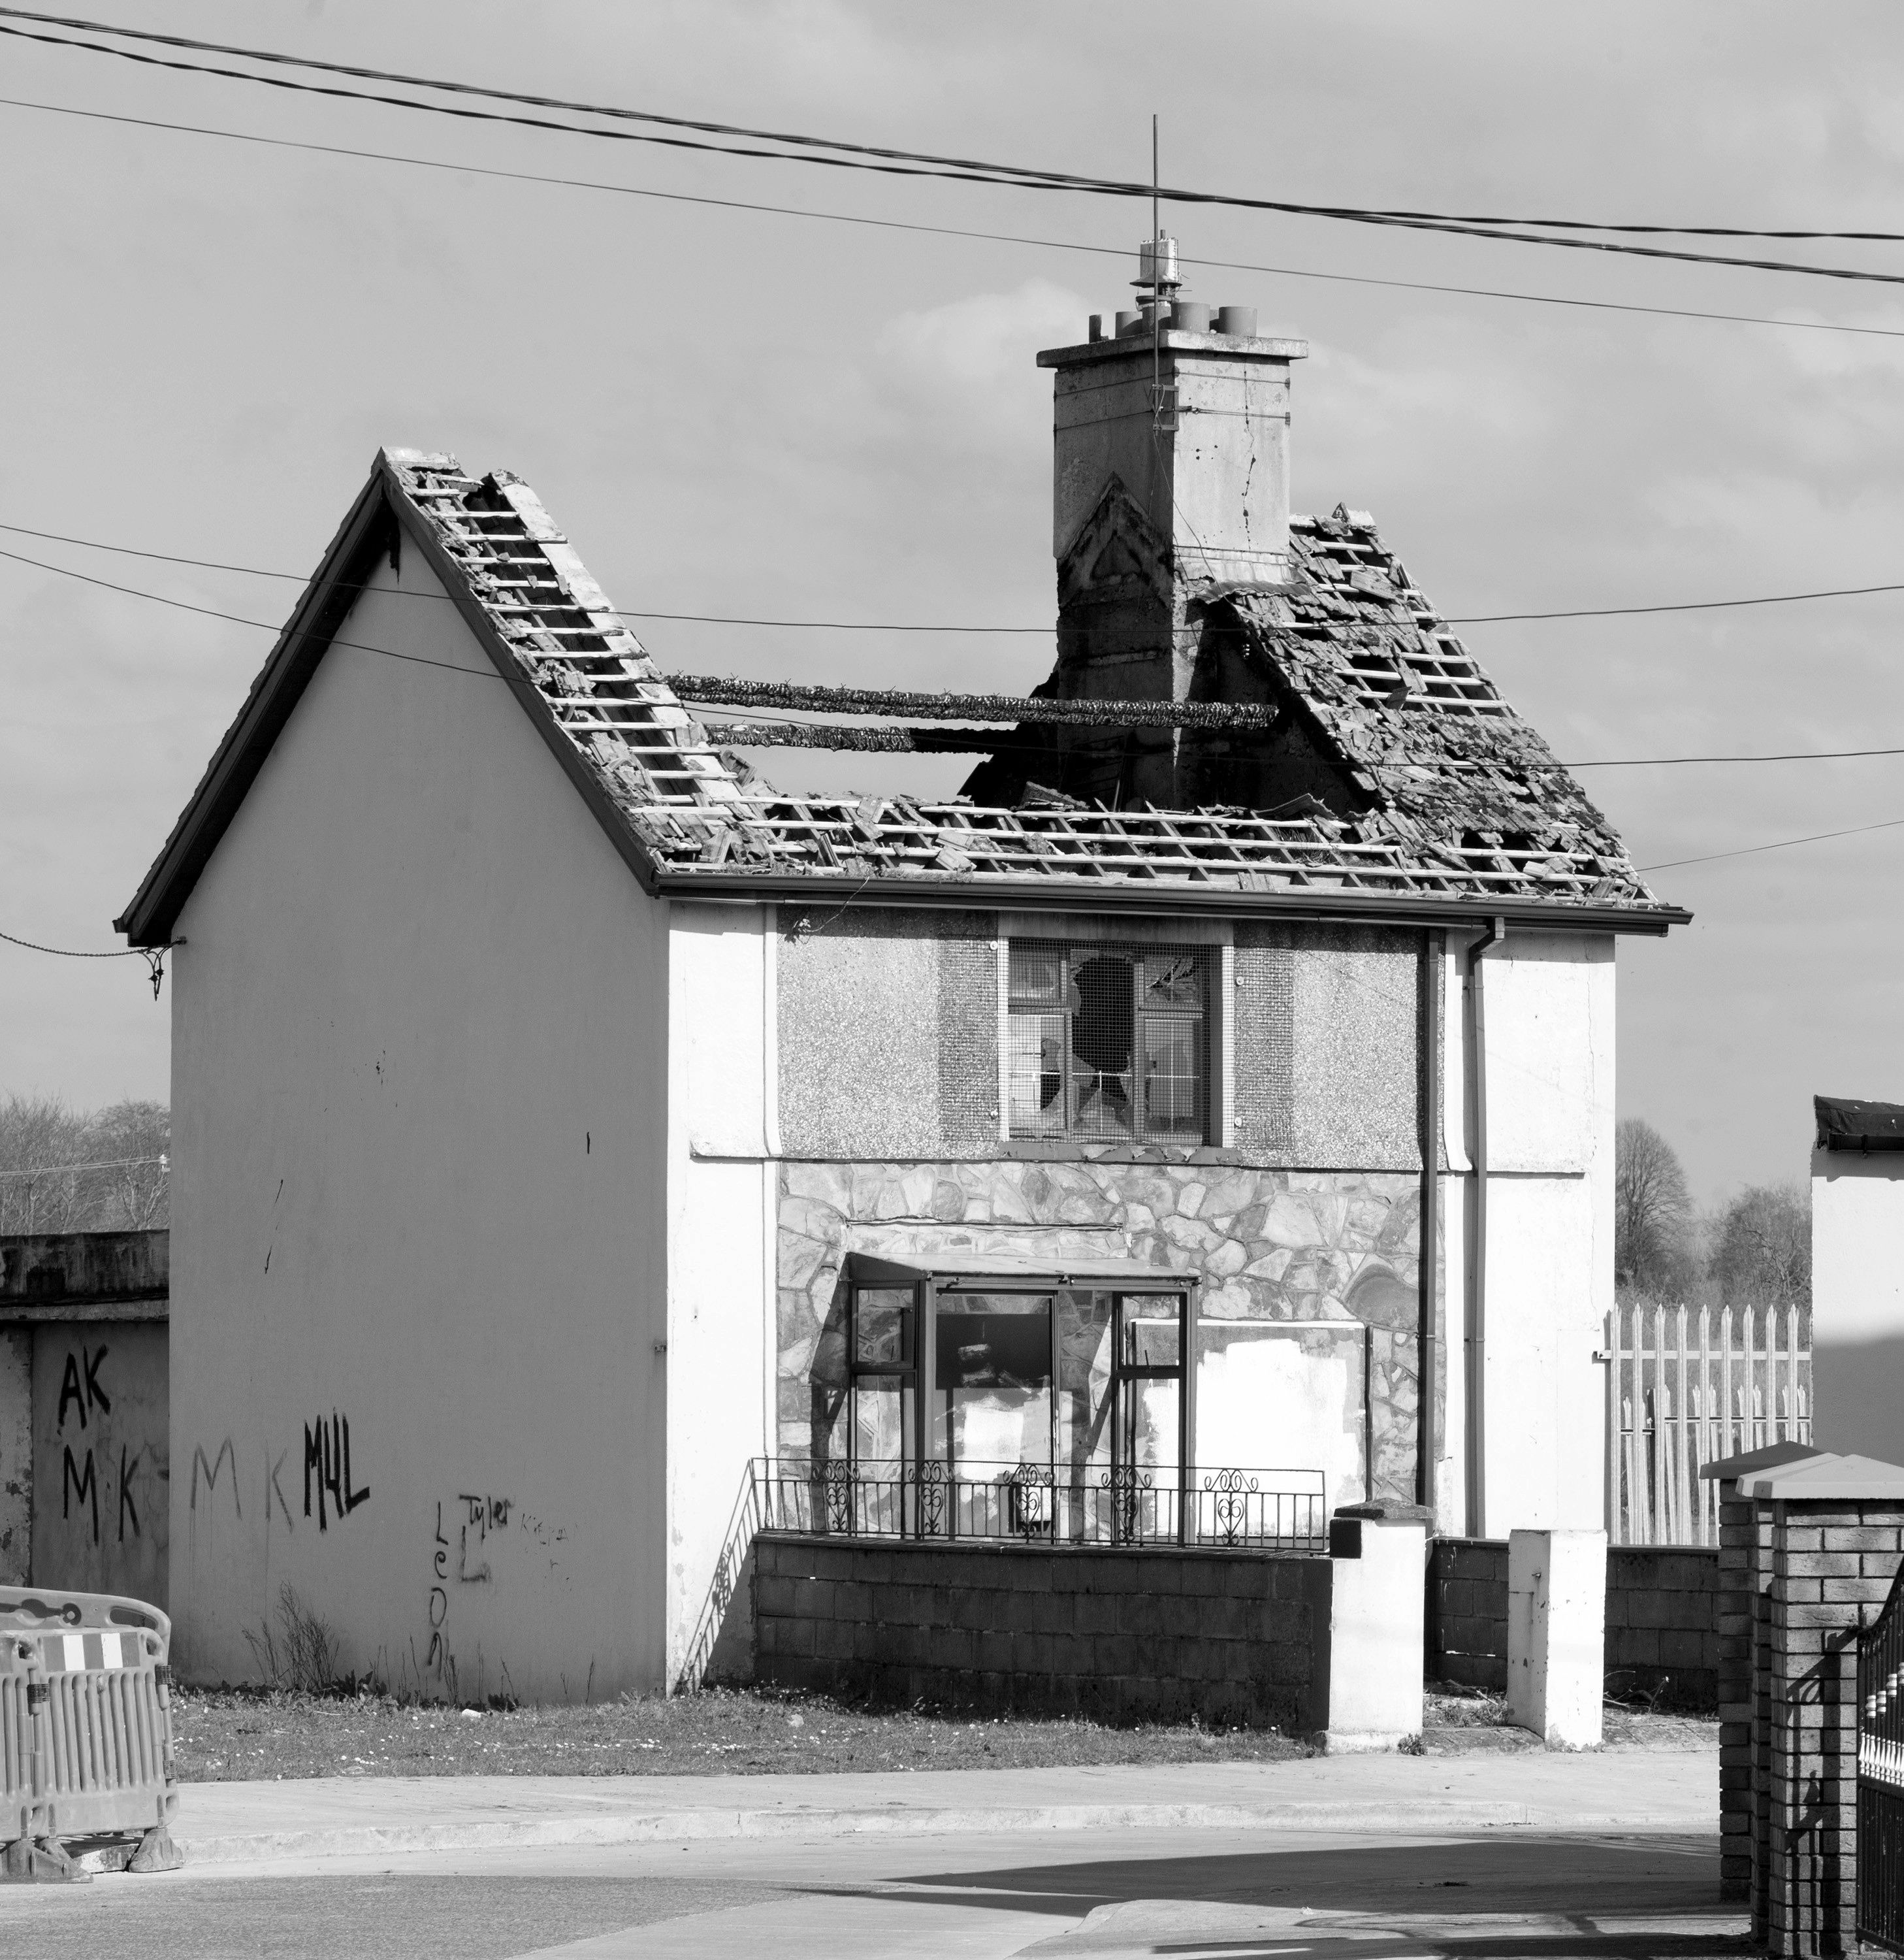 21d036363a2a9 St. Mary's Park, Limerick. One of the many derelict houses. Photograph by